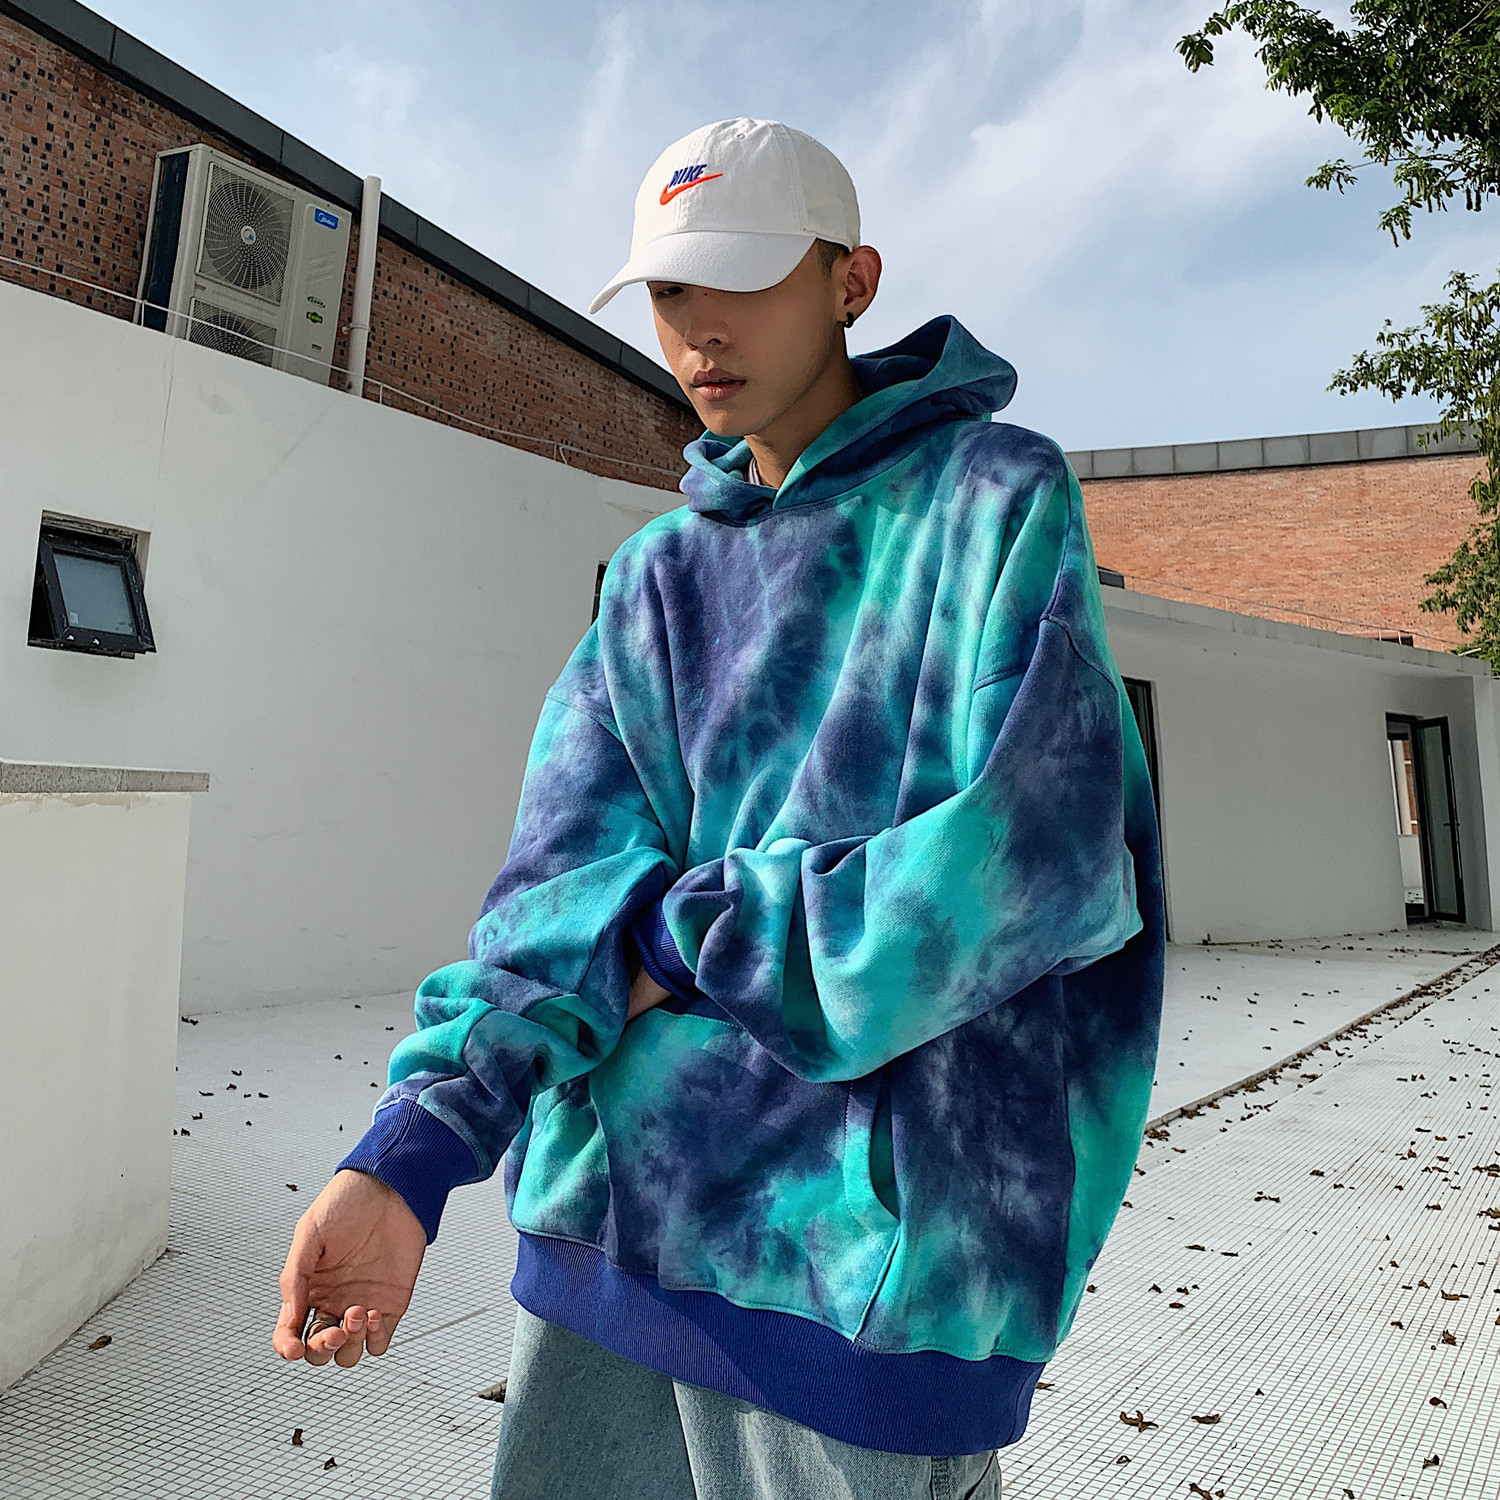 2020 New Hip Hop Hoodies Men Fashion Tie Dyeing Casual Pullover Blue Hoodies Men Autumn Hoody Sweatshirts Streetwear Popping